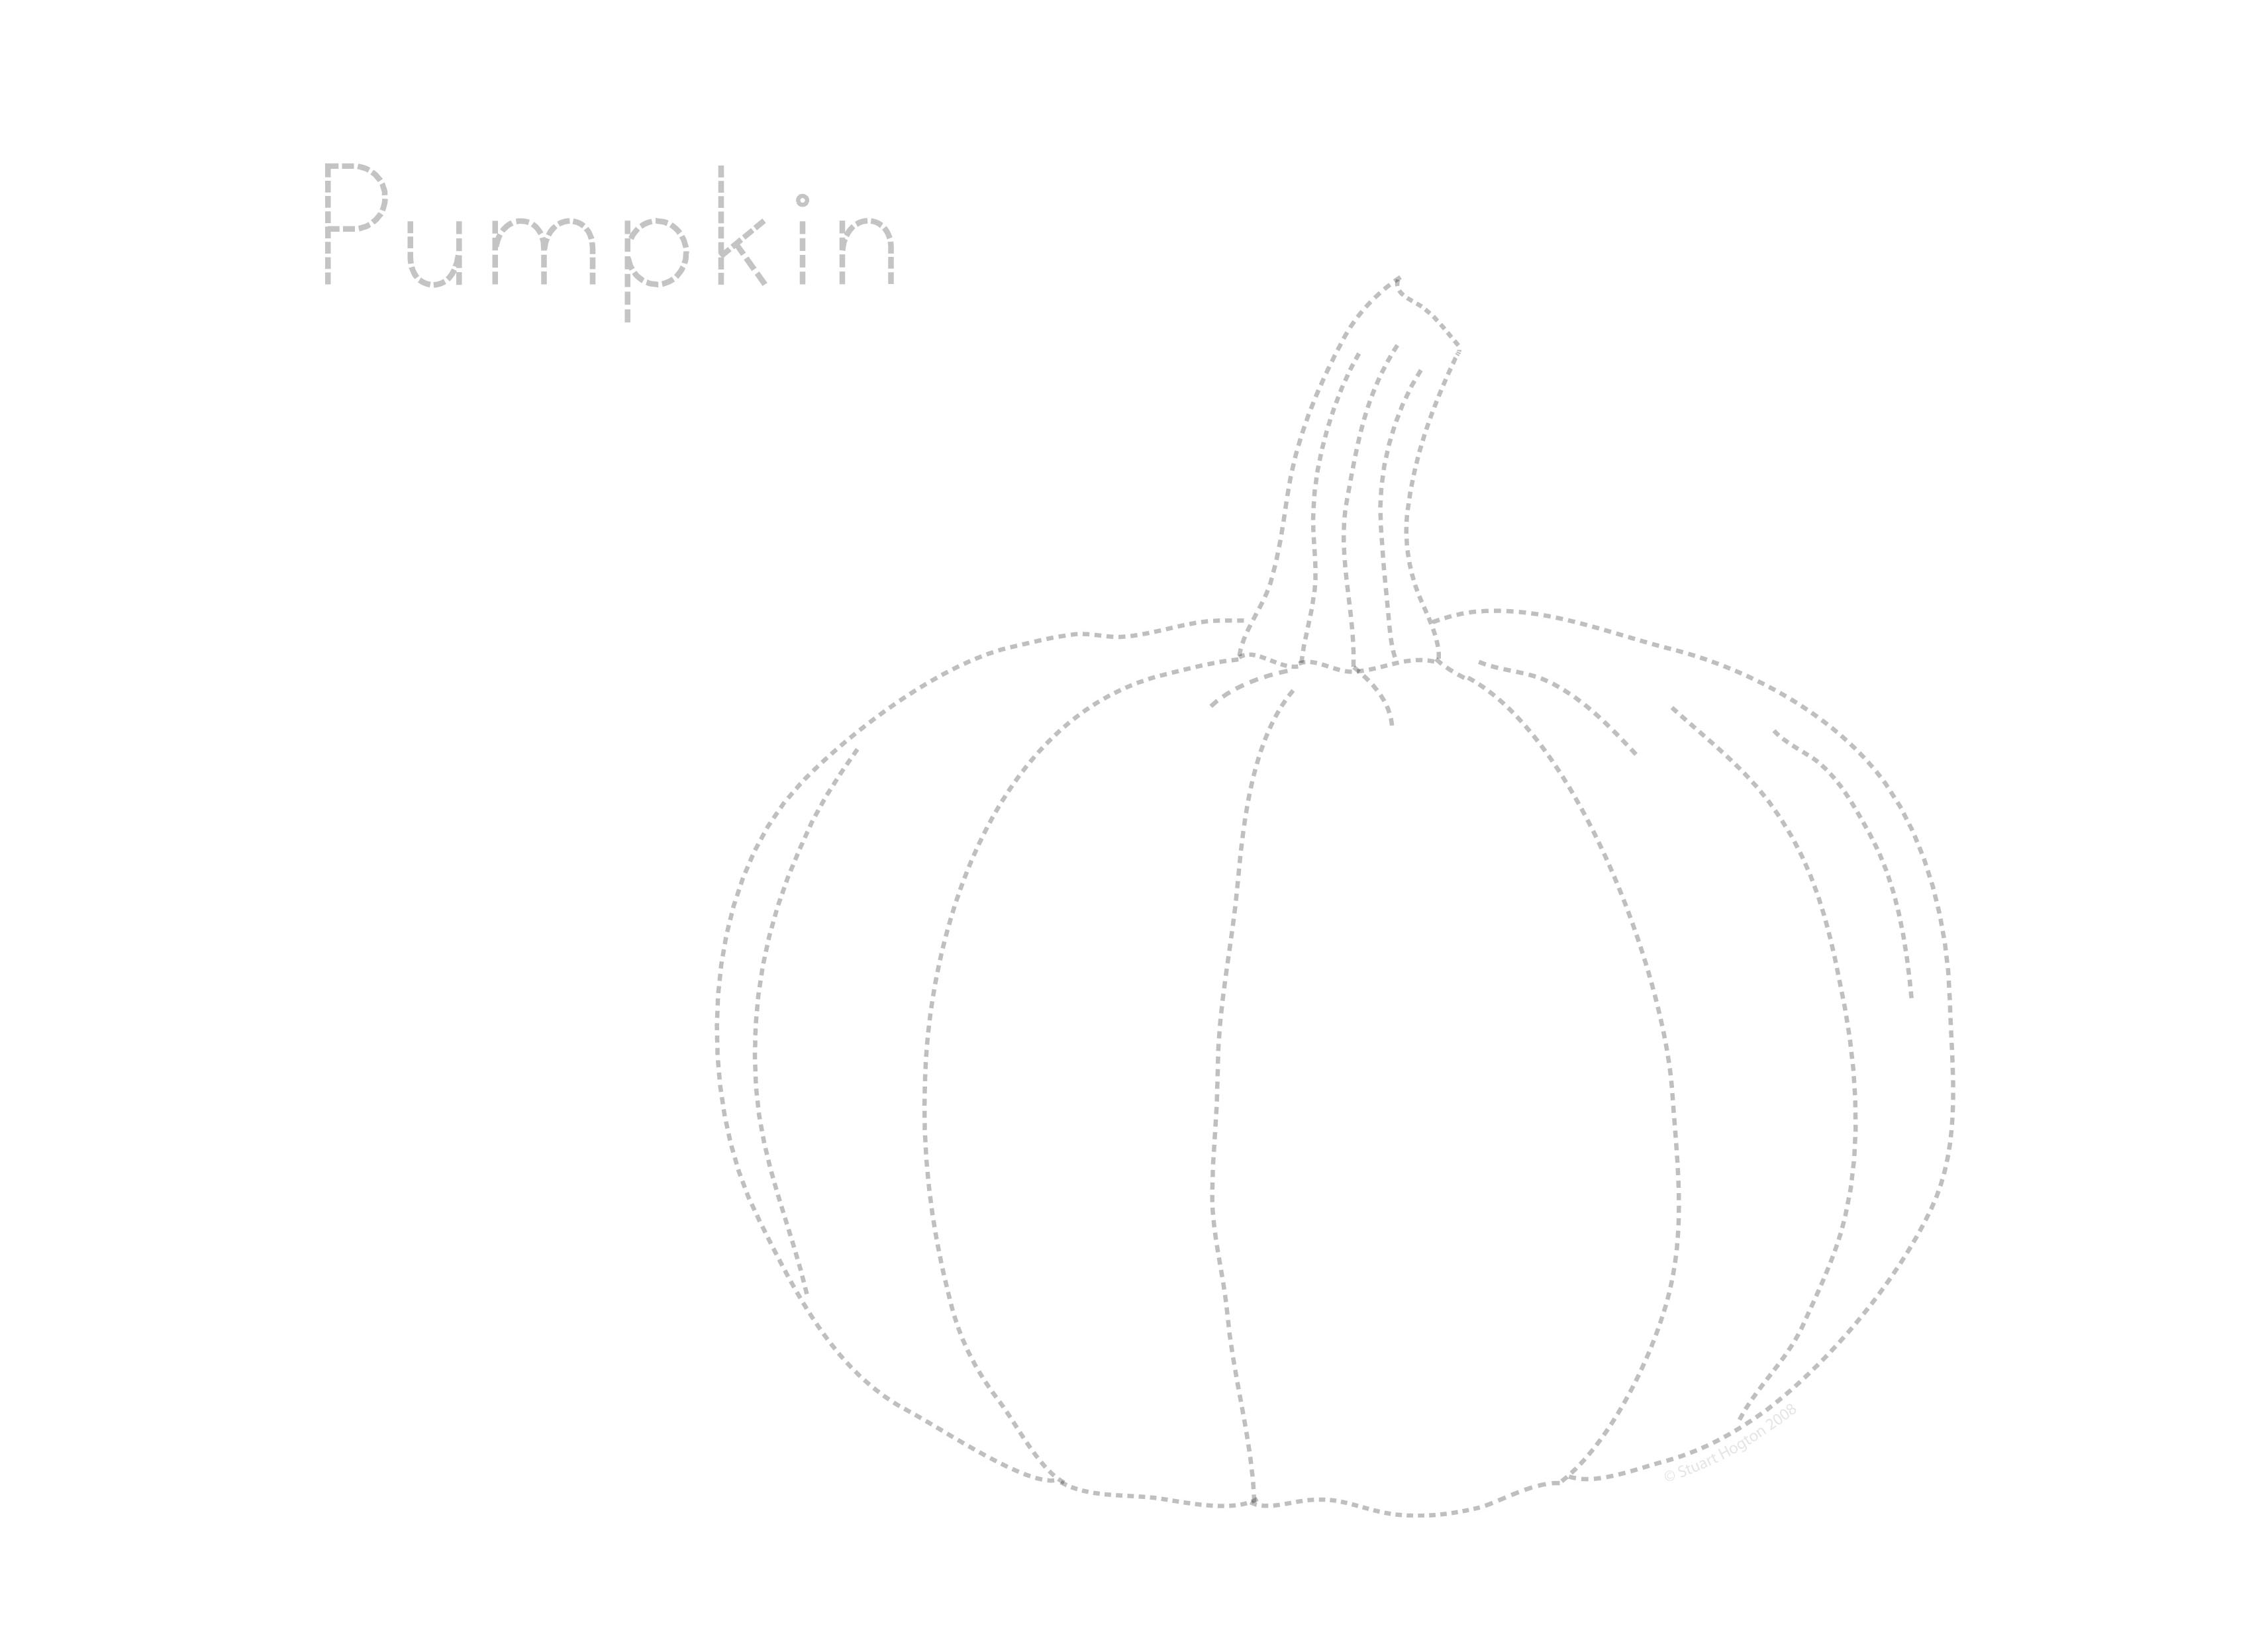 Pumpkin Draw together with Xtracing Lines   Pagespeed Ic Fs Kwgrtf also Printable Lined Paper For Nd Grade D Dd Bf B A Dbb Edf C Kids Writing Writing Papers further Liahonlp Nfo O D also F Wepv P vplmlppvz Lgidmg Ypgxnaj. on dotted lines coloring pages